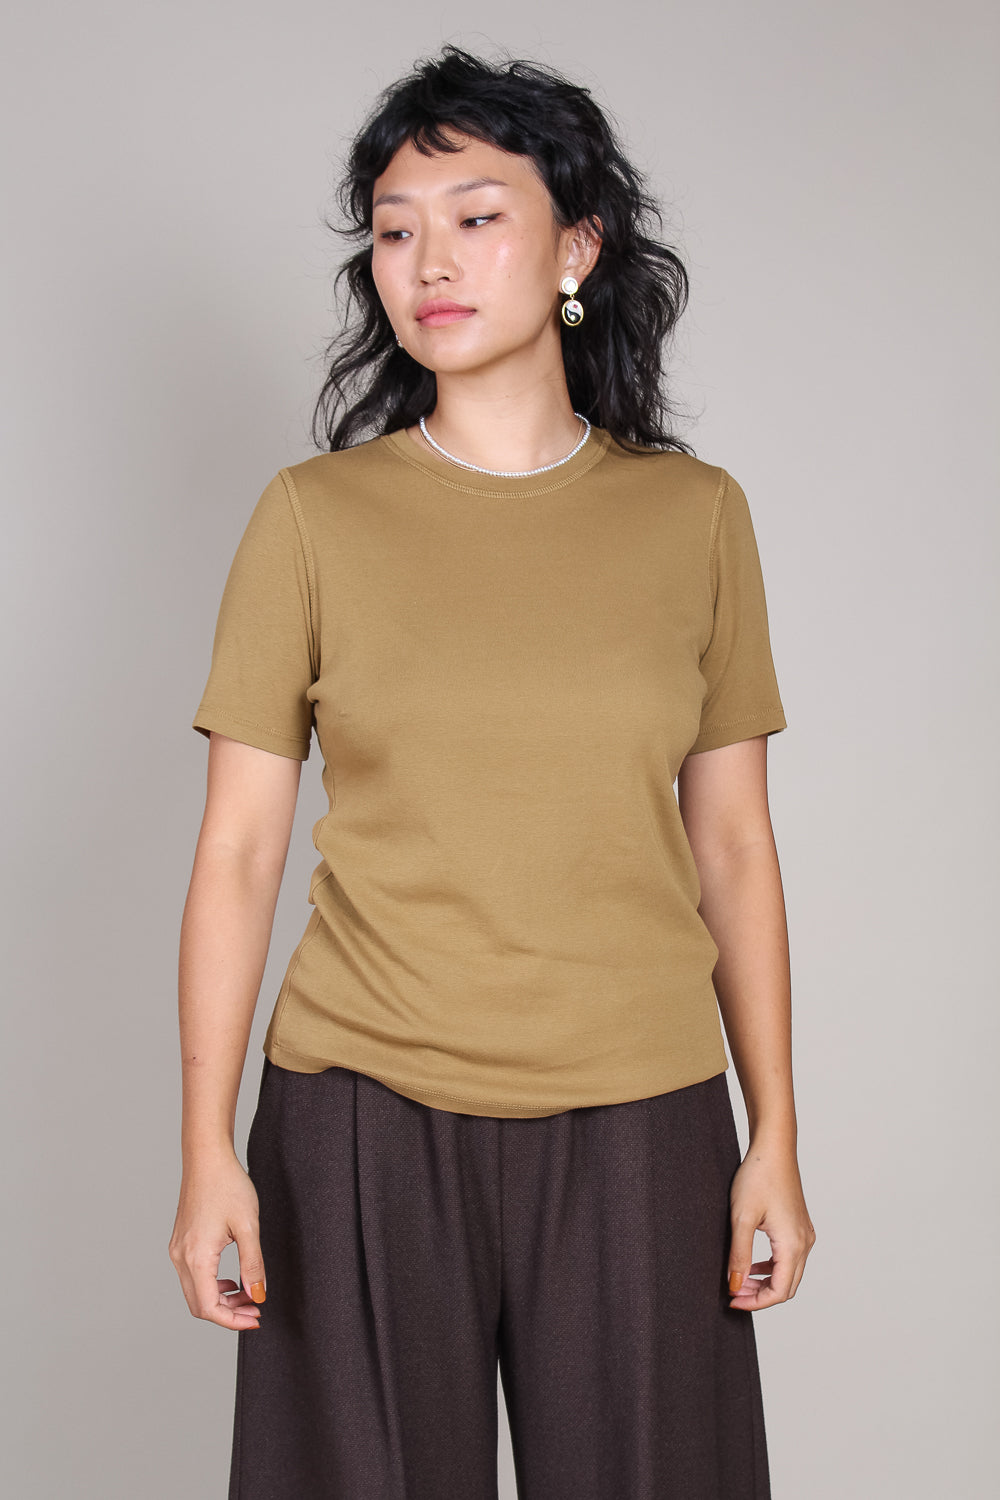 Slim Tee in Golden